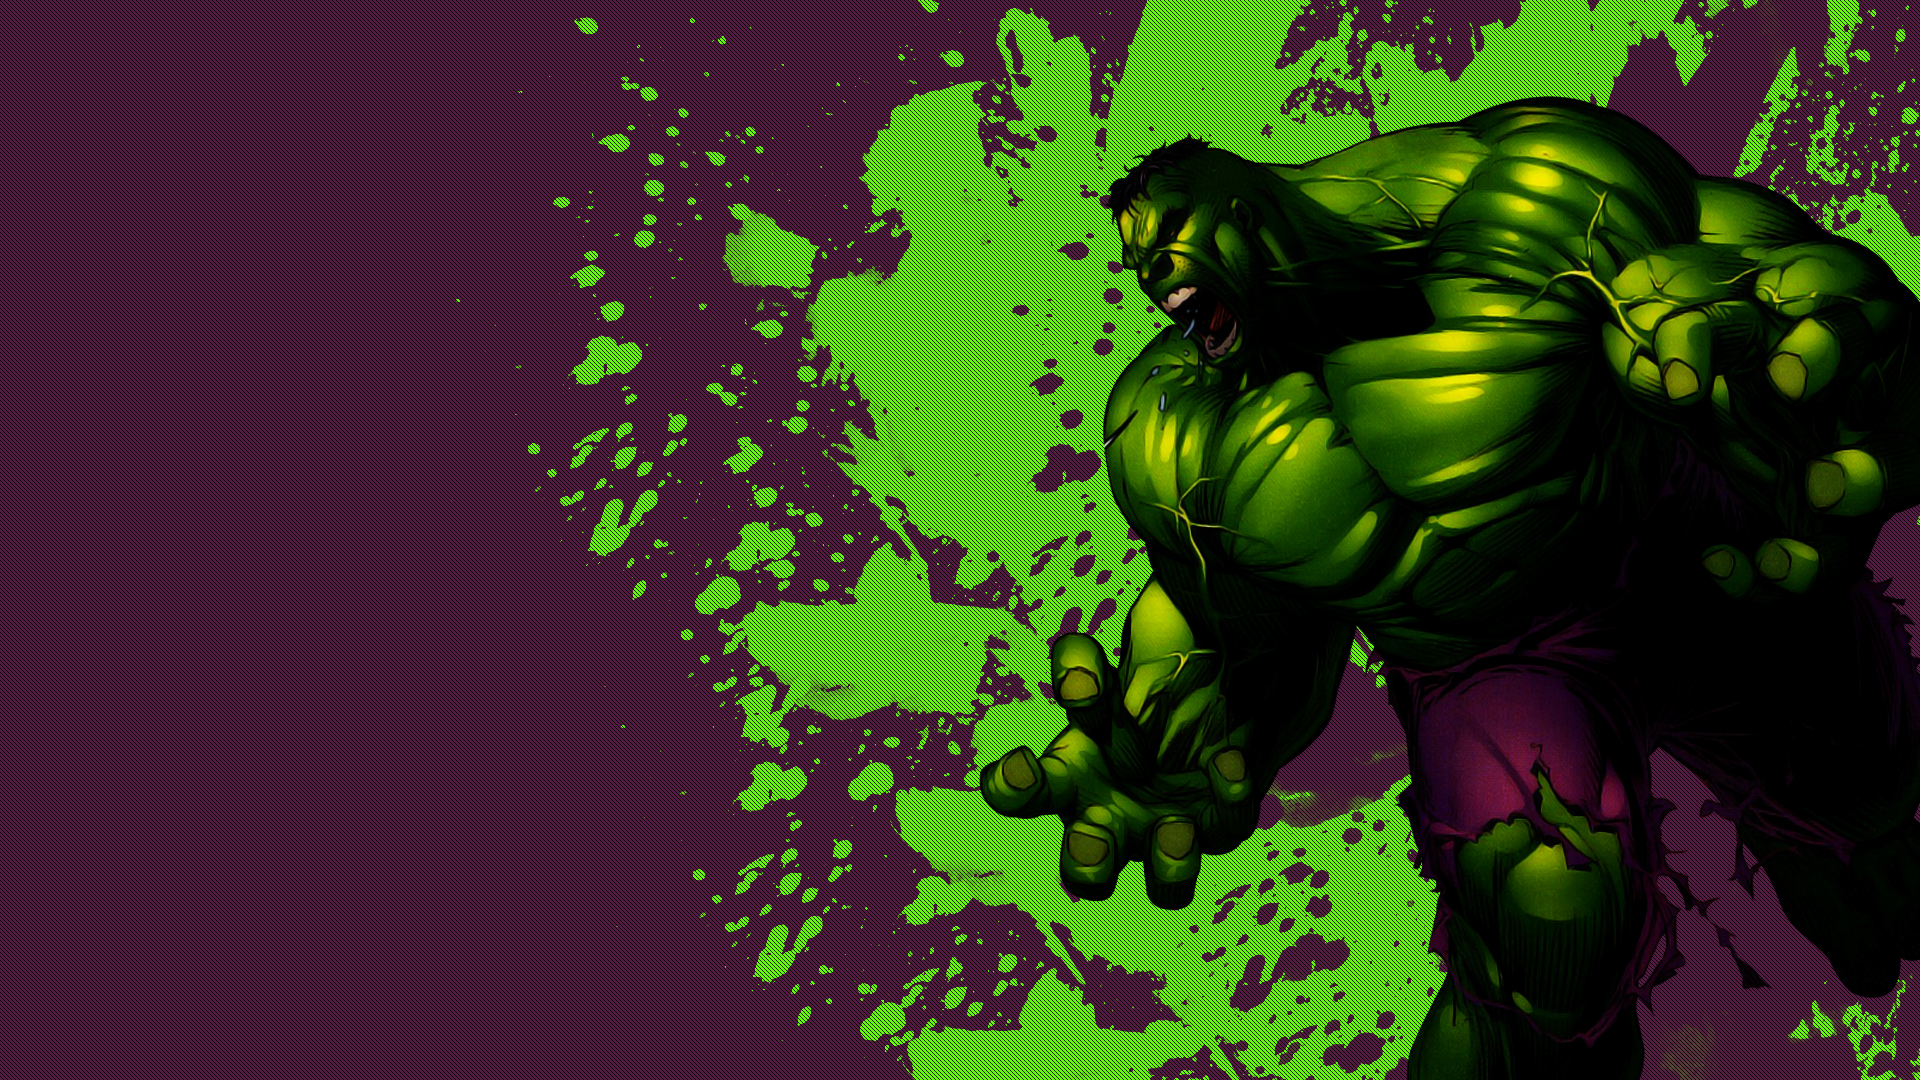 Simple   Wallpaper Home Screen Superhero - hulk_wallpaper_1920x1080_by_blacklotusxx-d4p1p7k  2018_299981.jpg